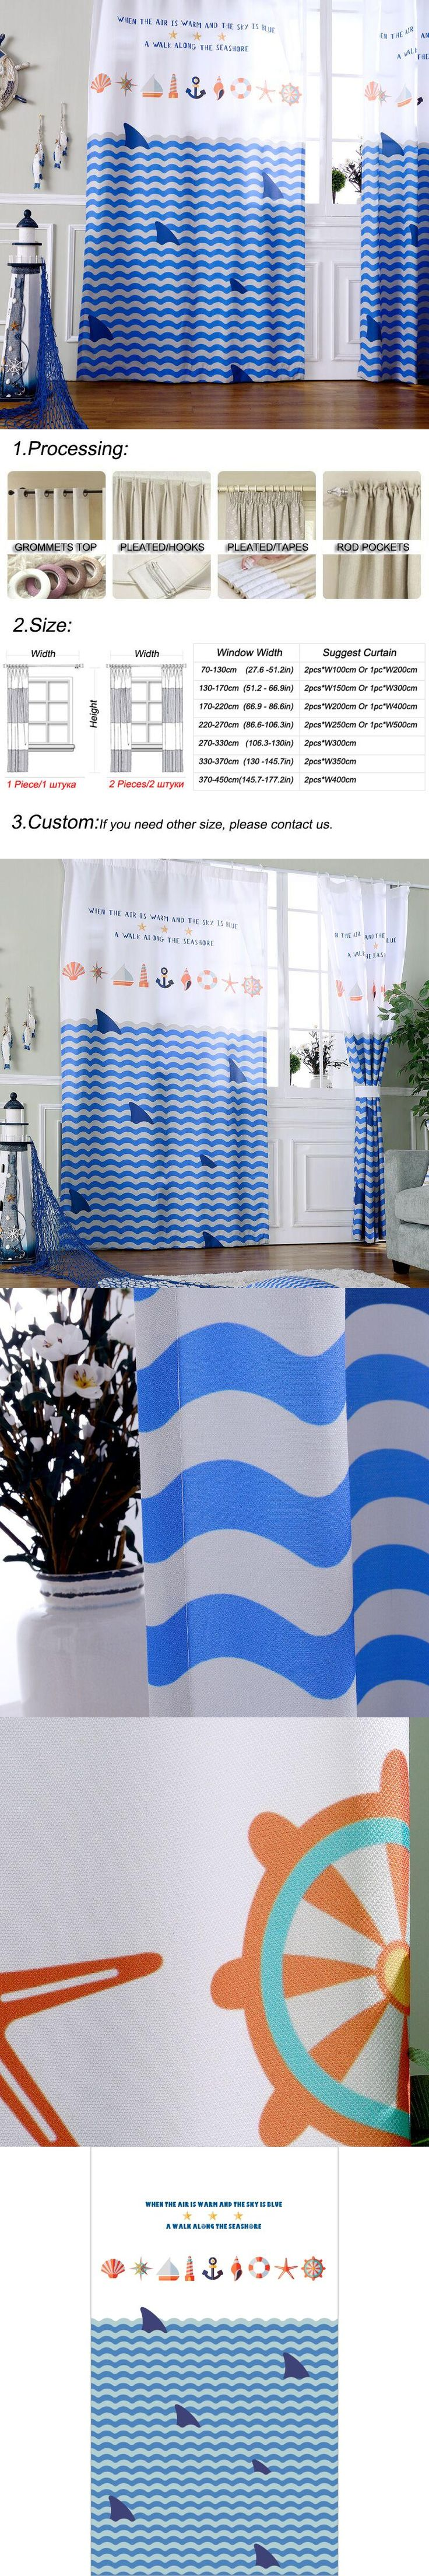 Blackout Curtains For Bedroom Boys Window Panels Shark Mediterranean Blind Fabric Ready Made Drapery Patterns Children Blind